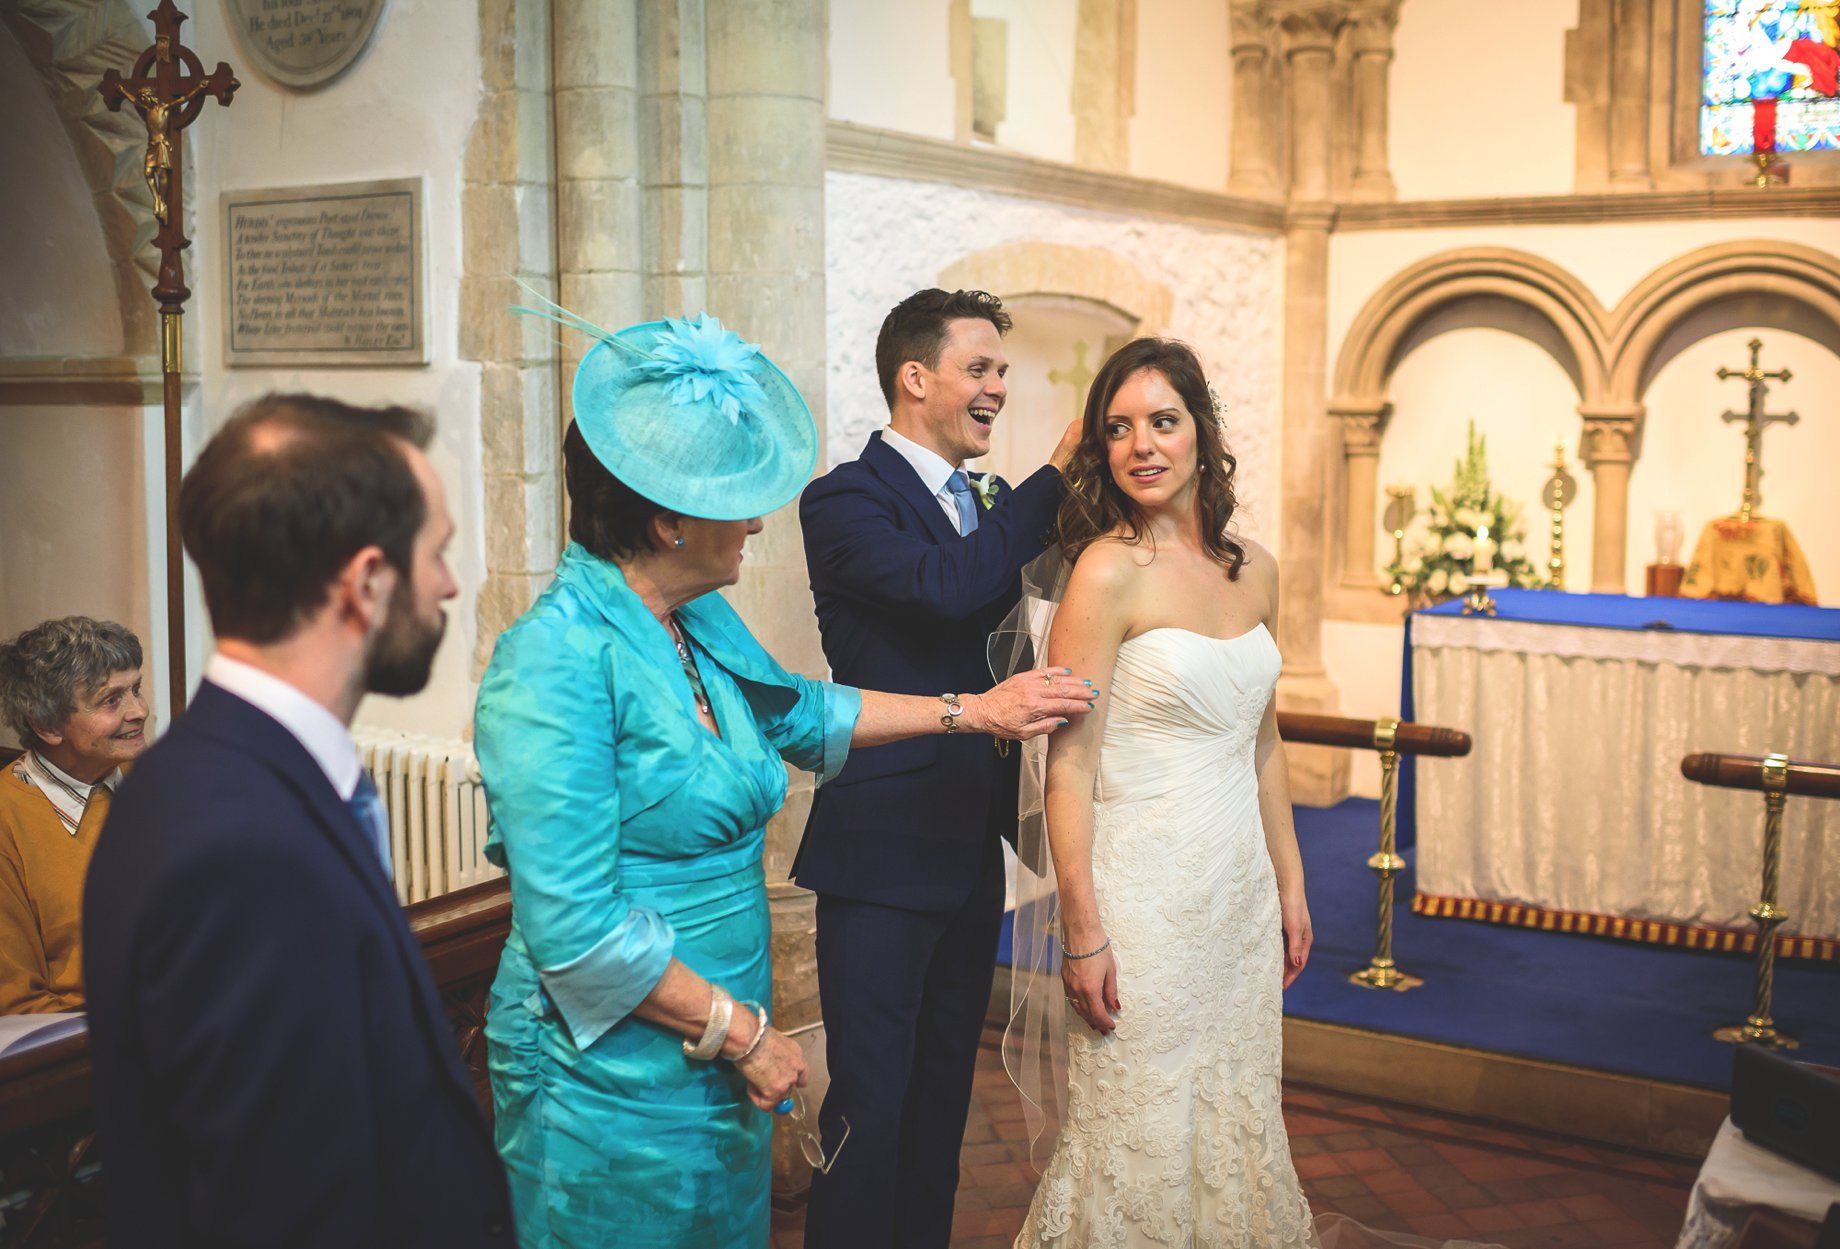 Louisa and Chris - West Sussex wedding photography (65 of 160)